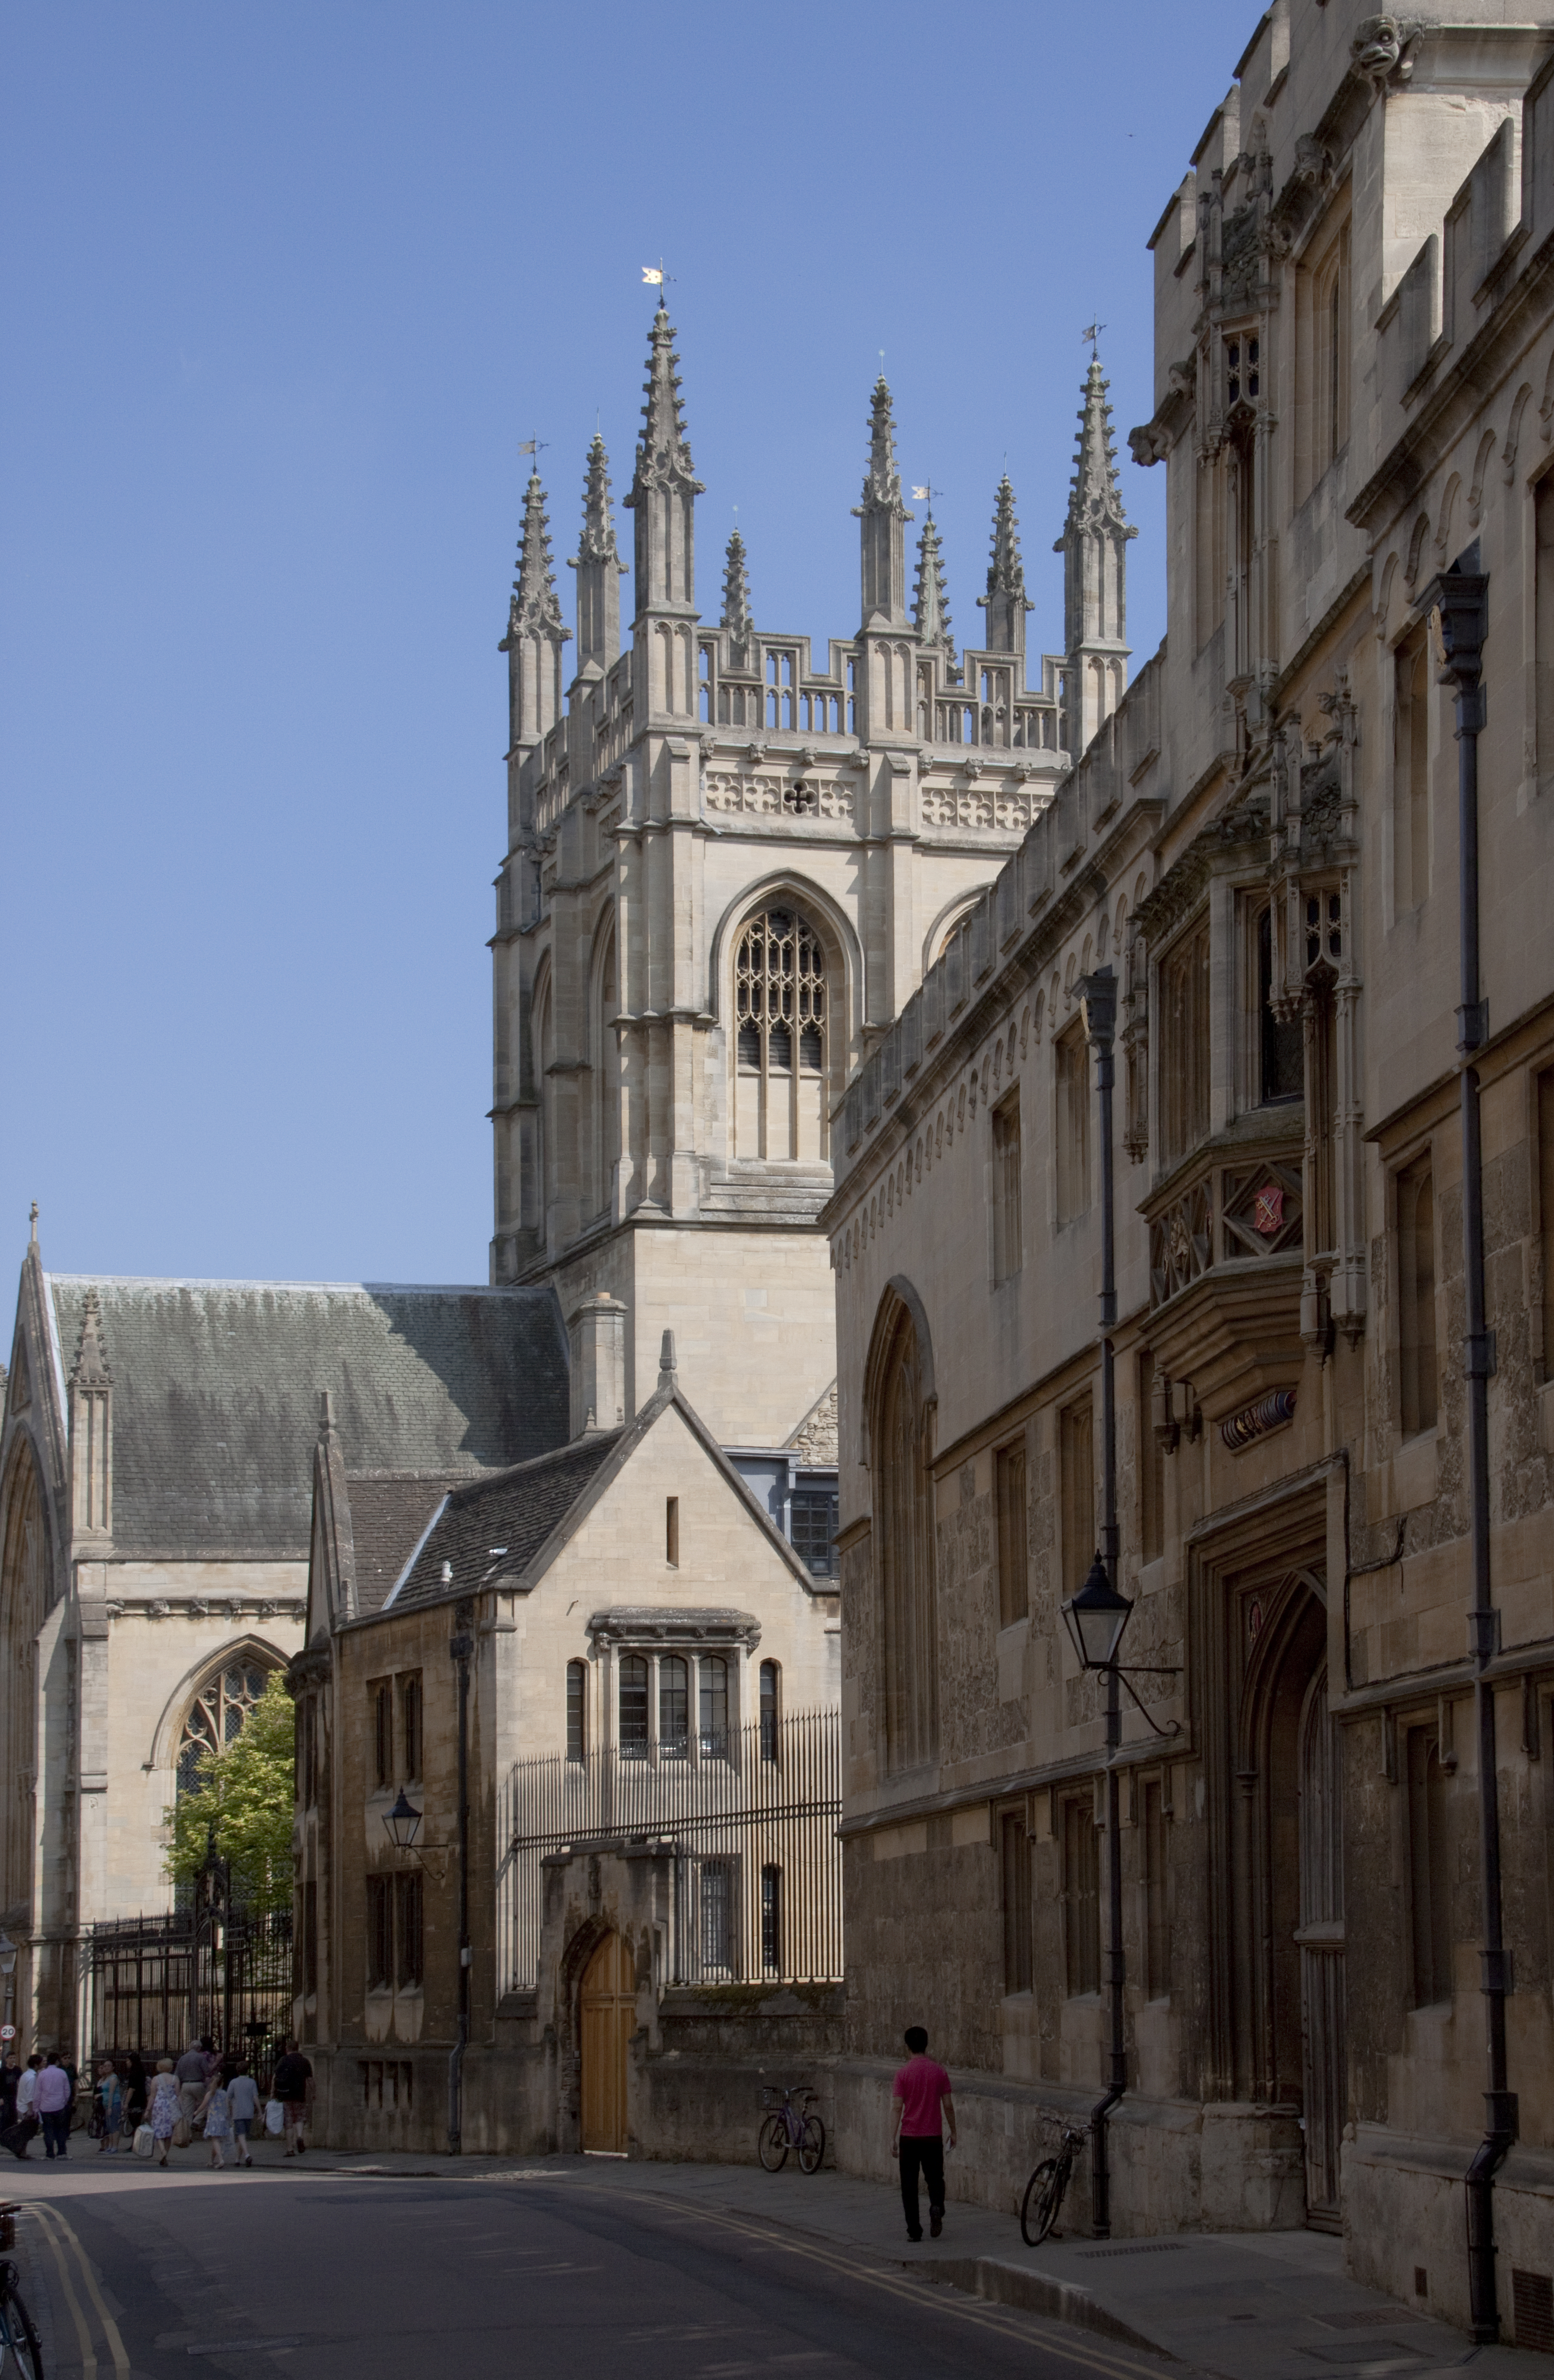 Image of Corpus Christi College, Oxford, as seen from Merton Street